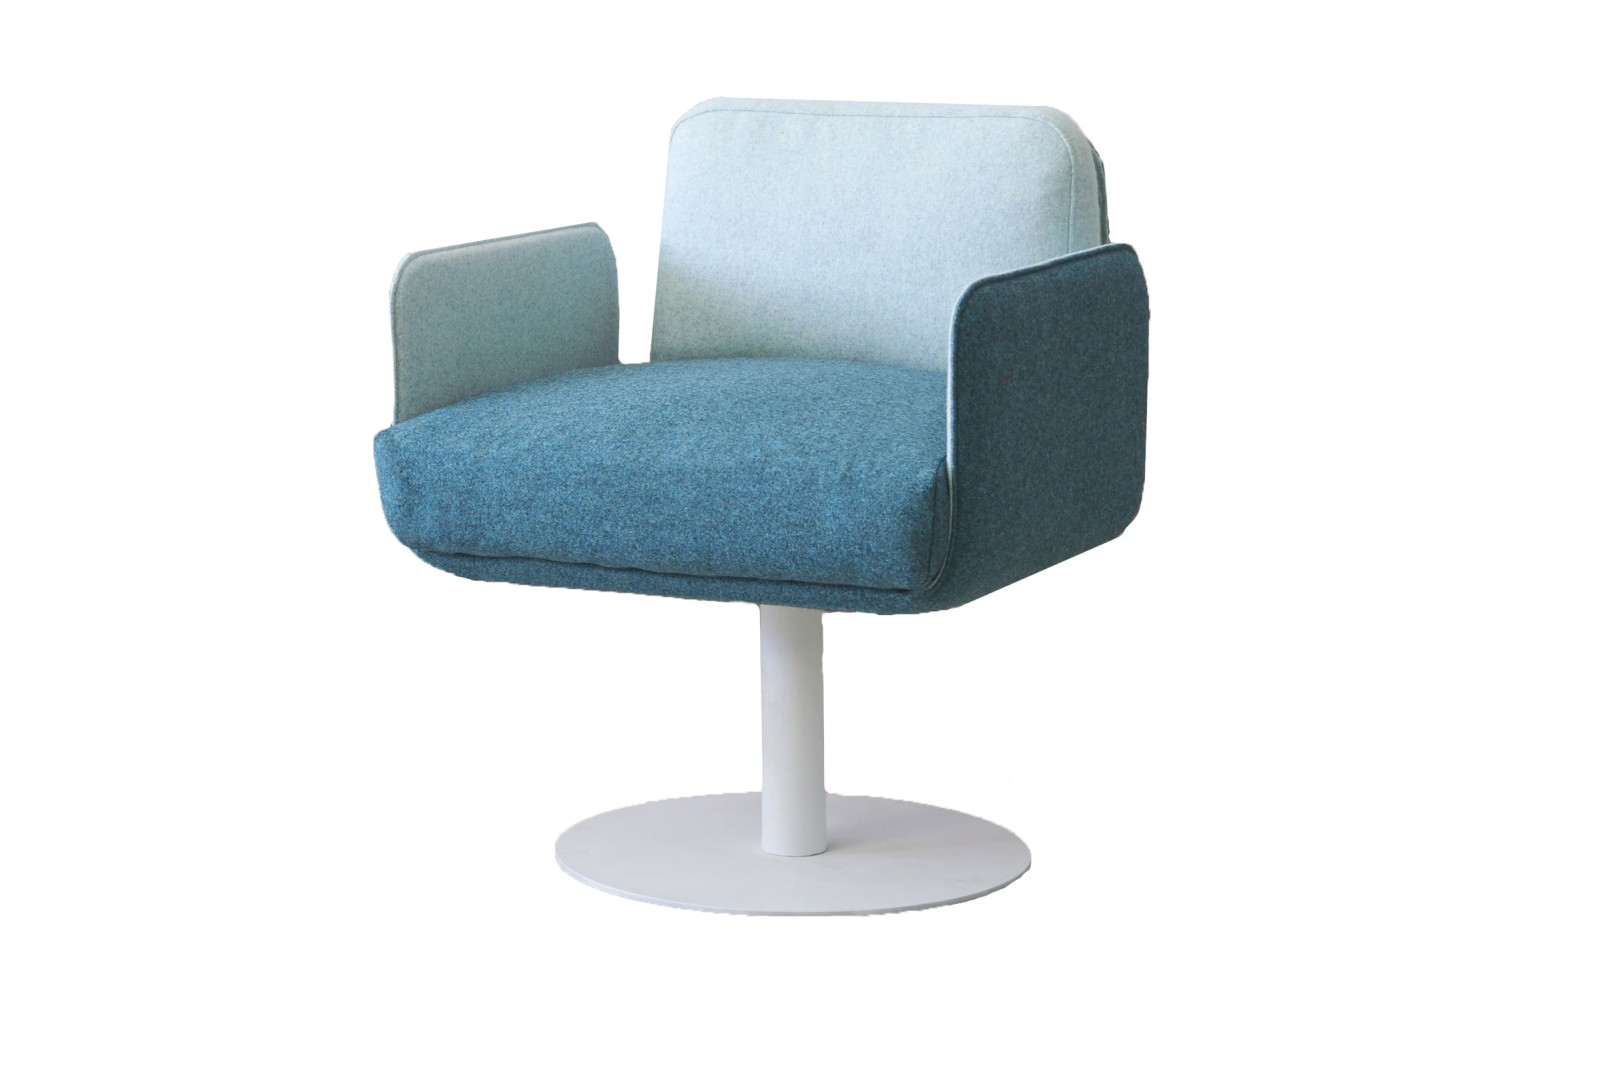 HM10C FLIX Swivel Arm Chair Kvadrat Canvas 2 White Base